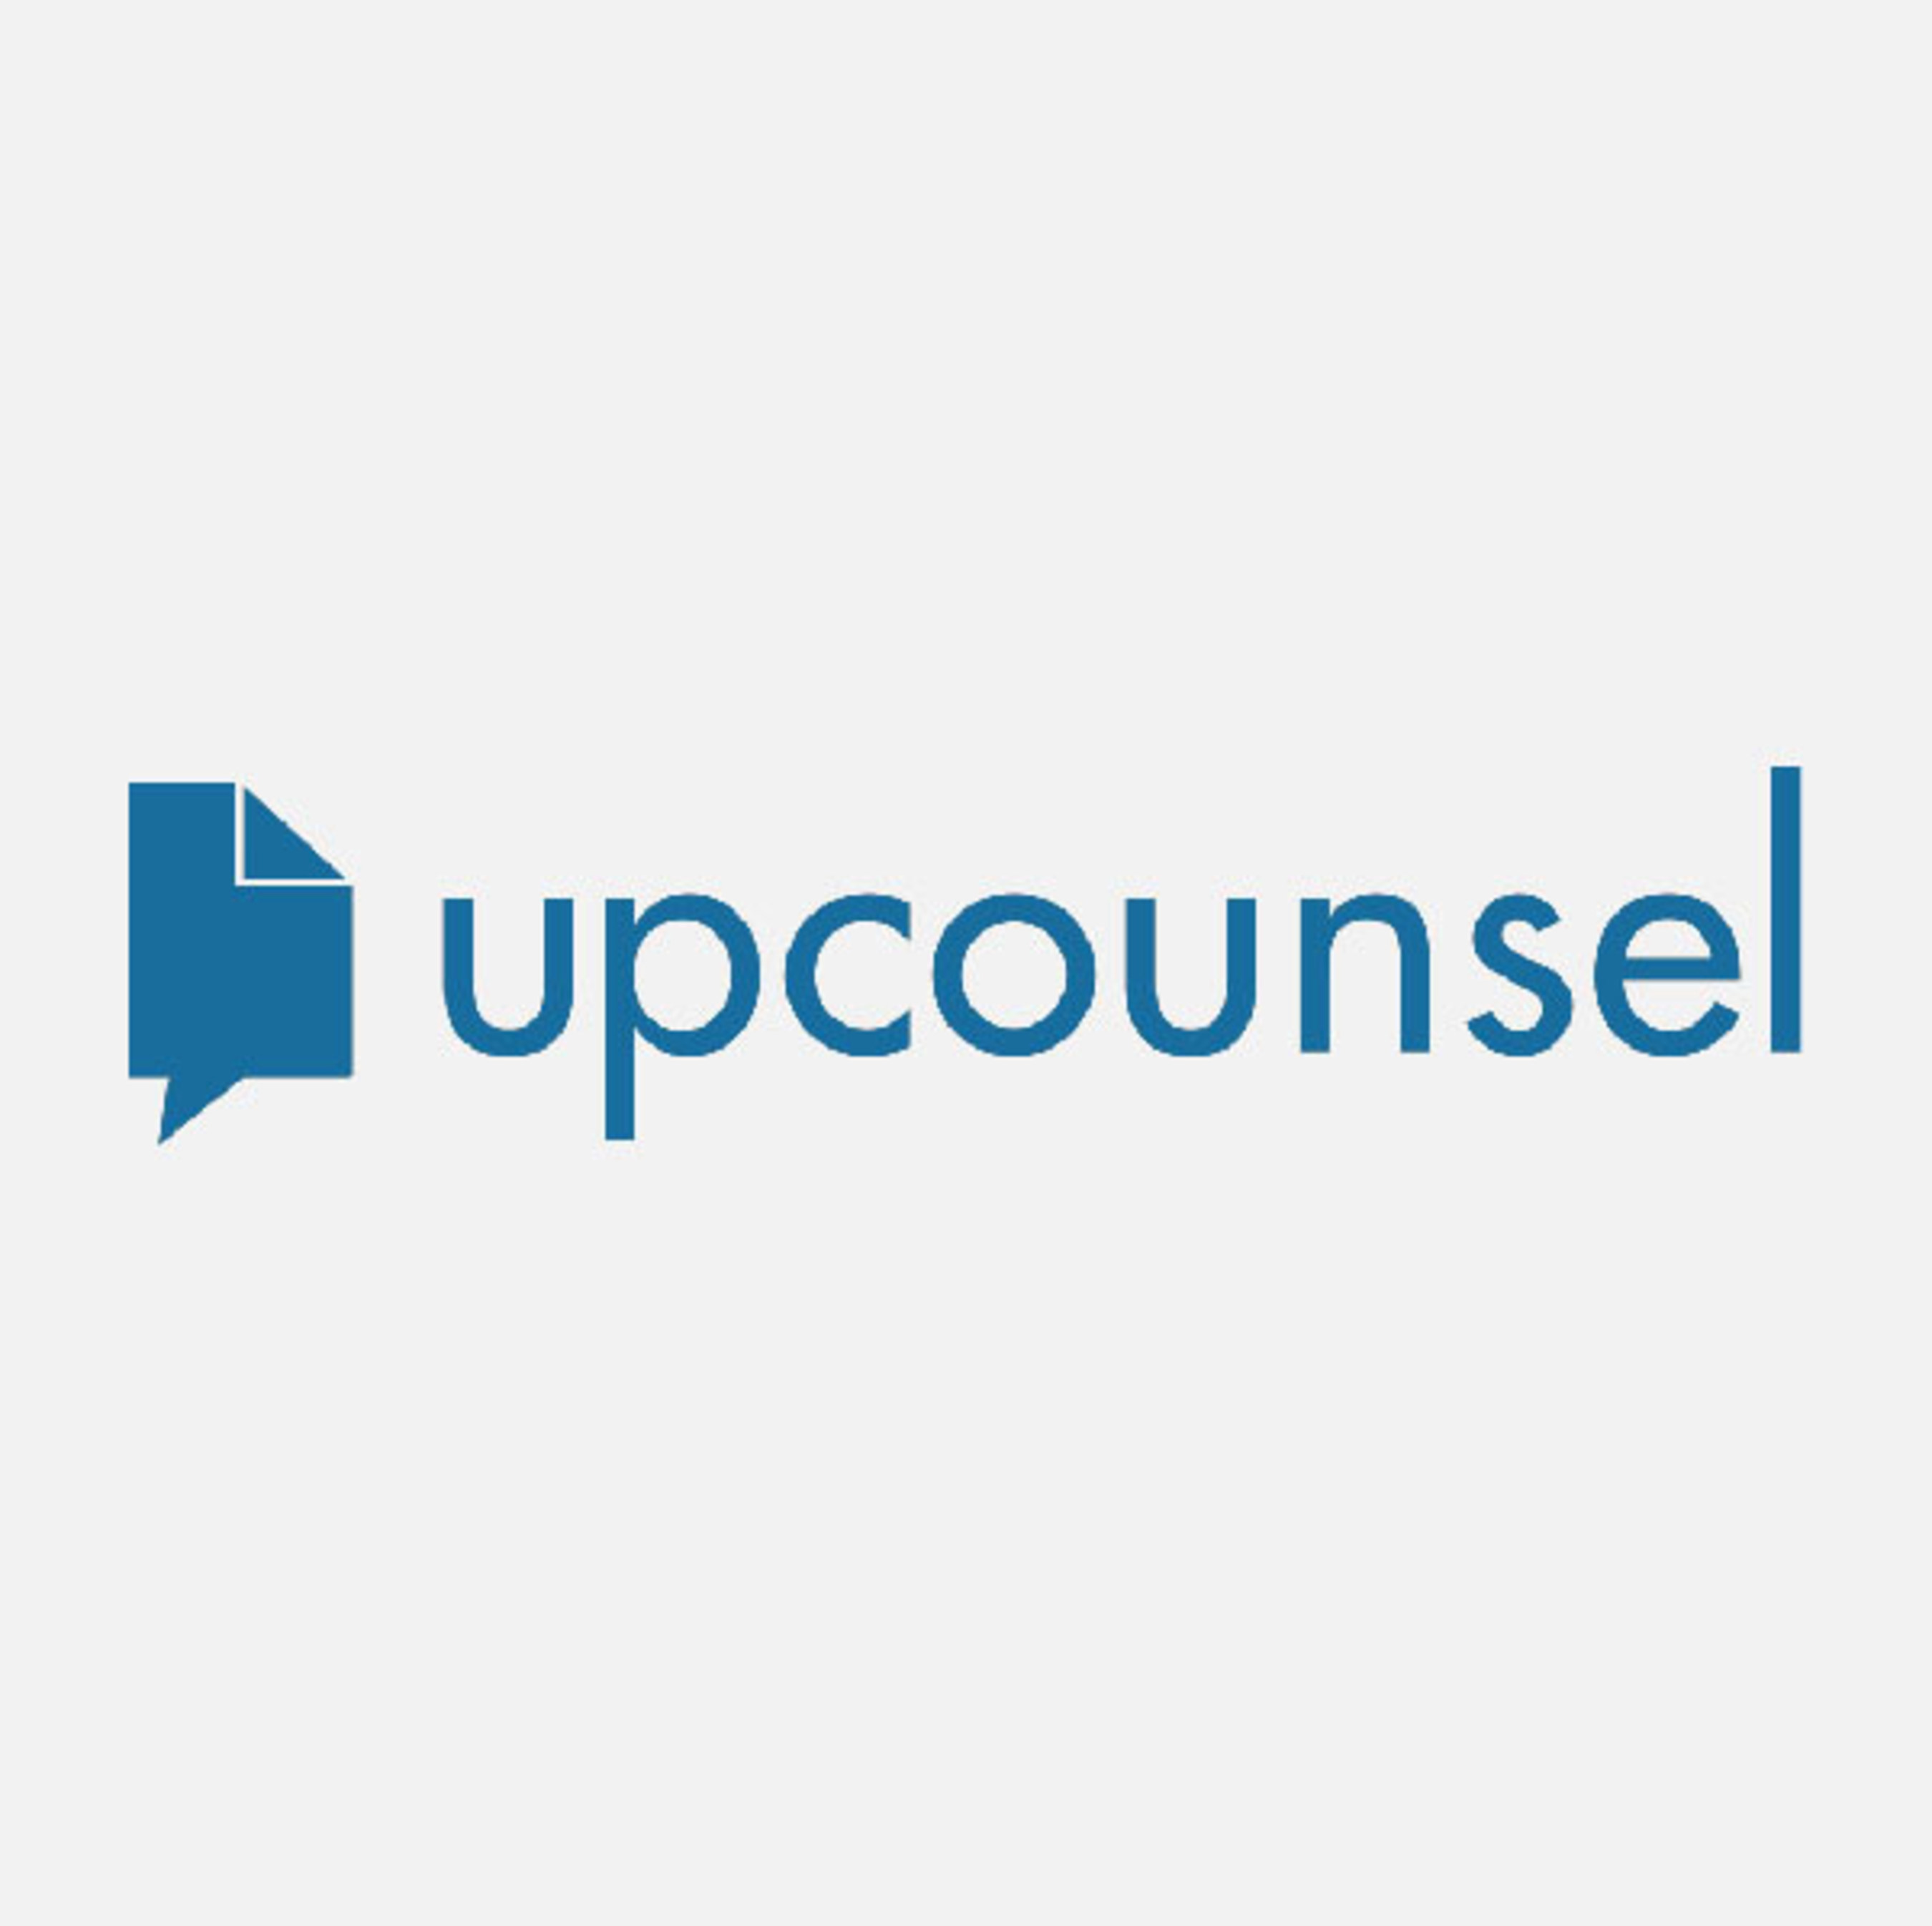 UpCounsel Launches In Colorado To Help Businesses Get More